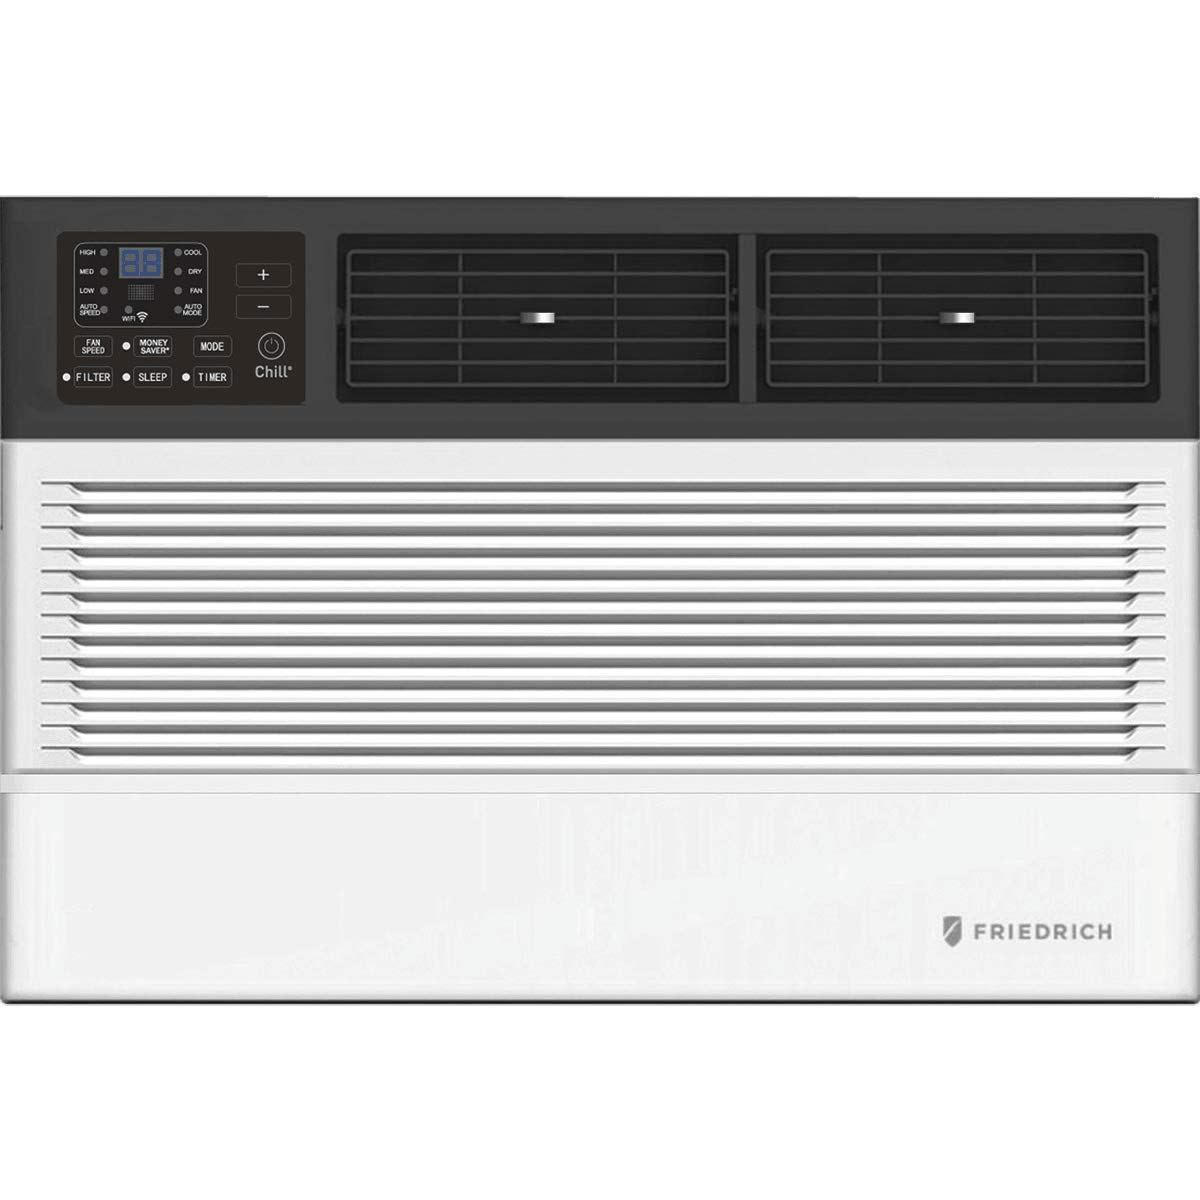 Friedrich Ccf05a10a 16 Air Conditioner With 5000 Btu Cooling Capacity 115v In White Wall Air Conditioner Window Air Conditioner Room Air Conditioner